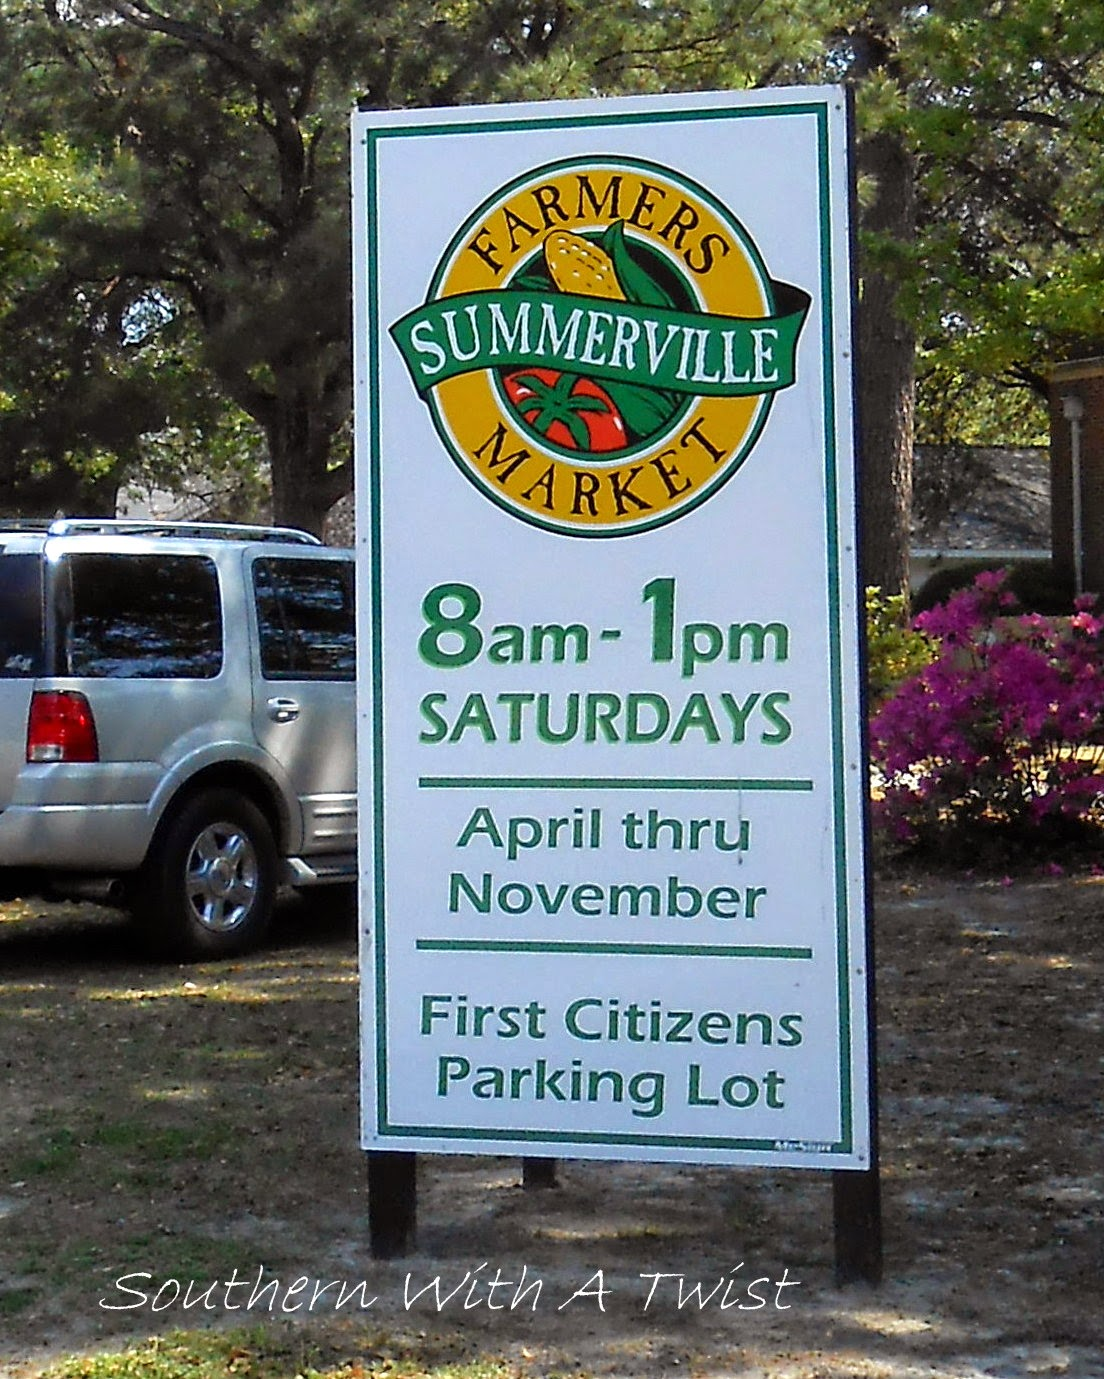 Southern With A Twist: Our Trip to Summerville Farmers Market and ...